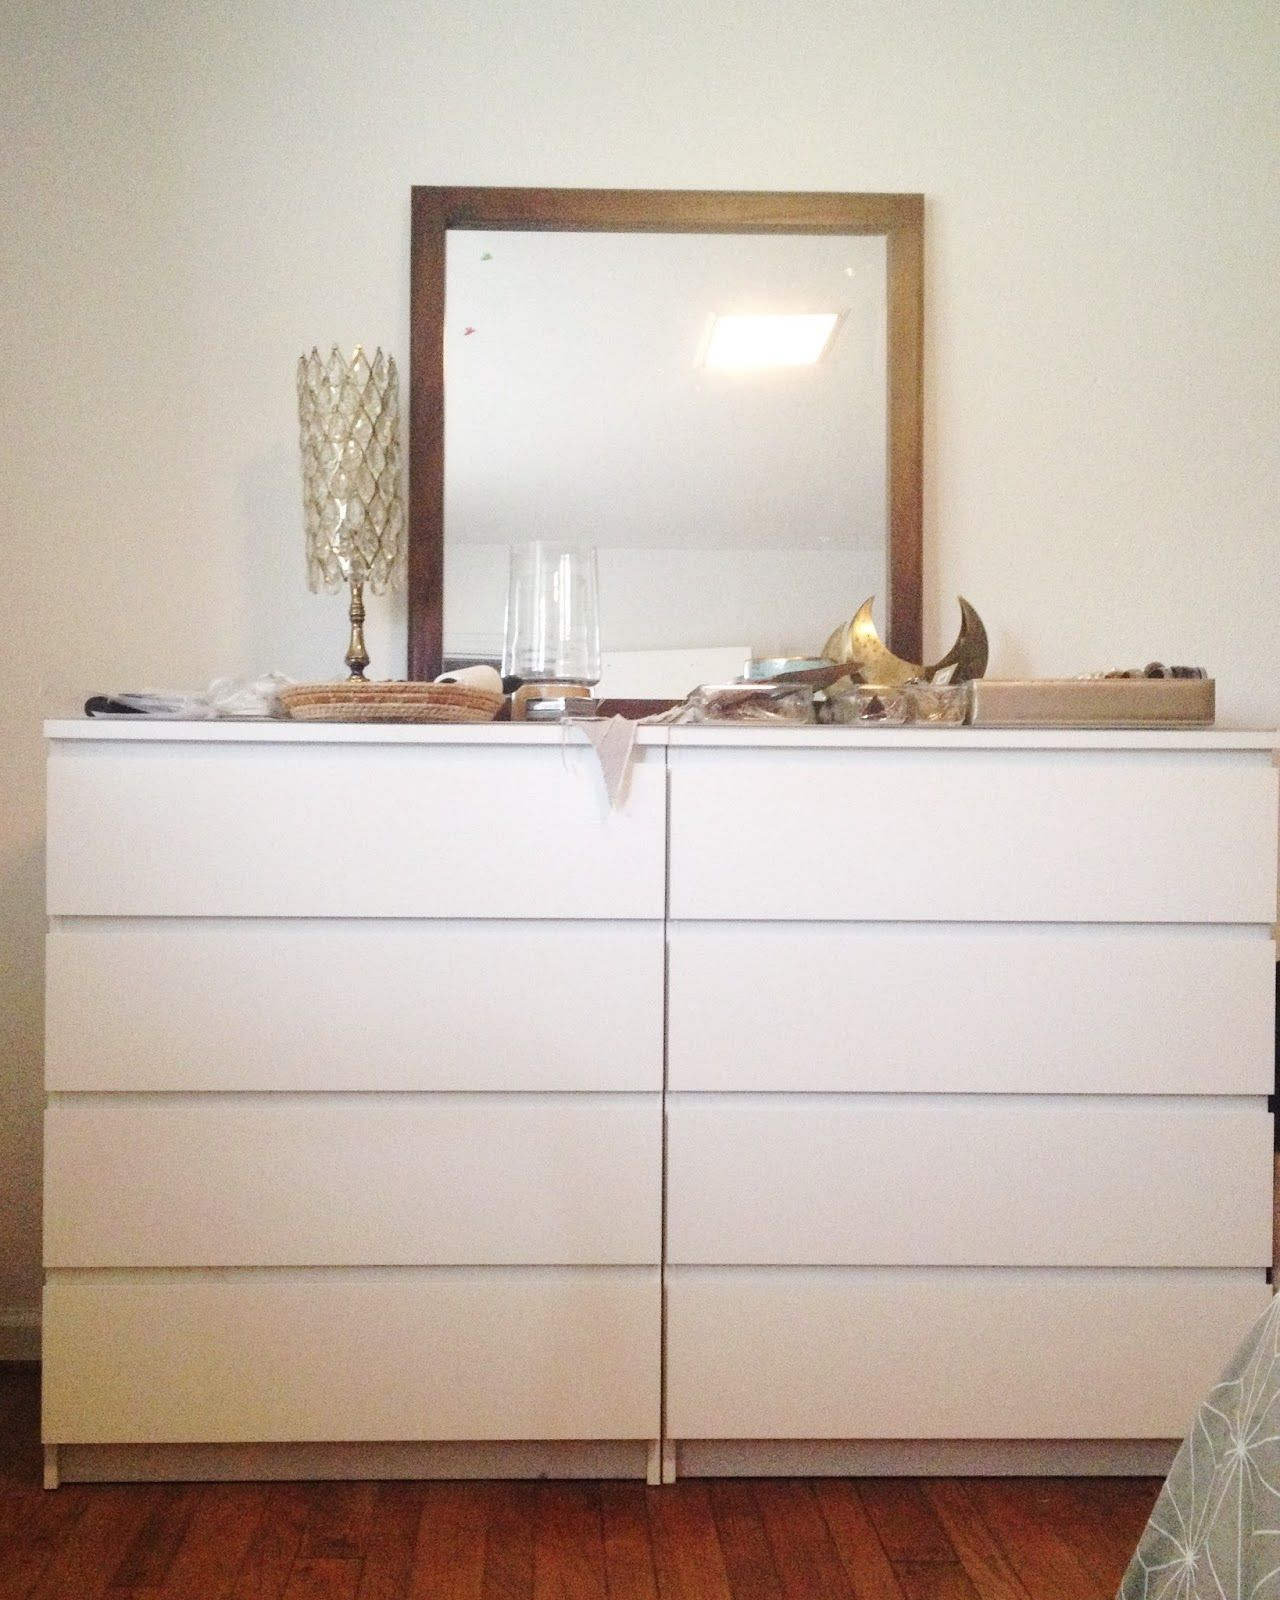 Malm Drawers Side By Side   Google Search Malm Drawers, Malm Dresser,  Dresser Storage